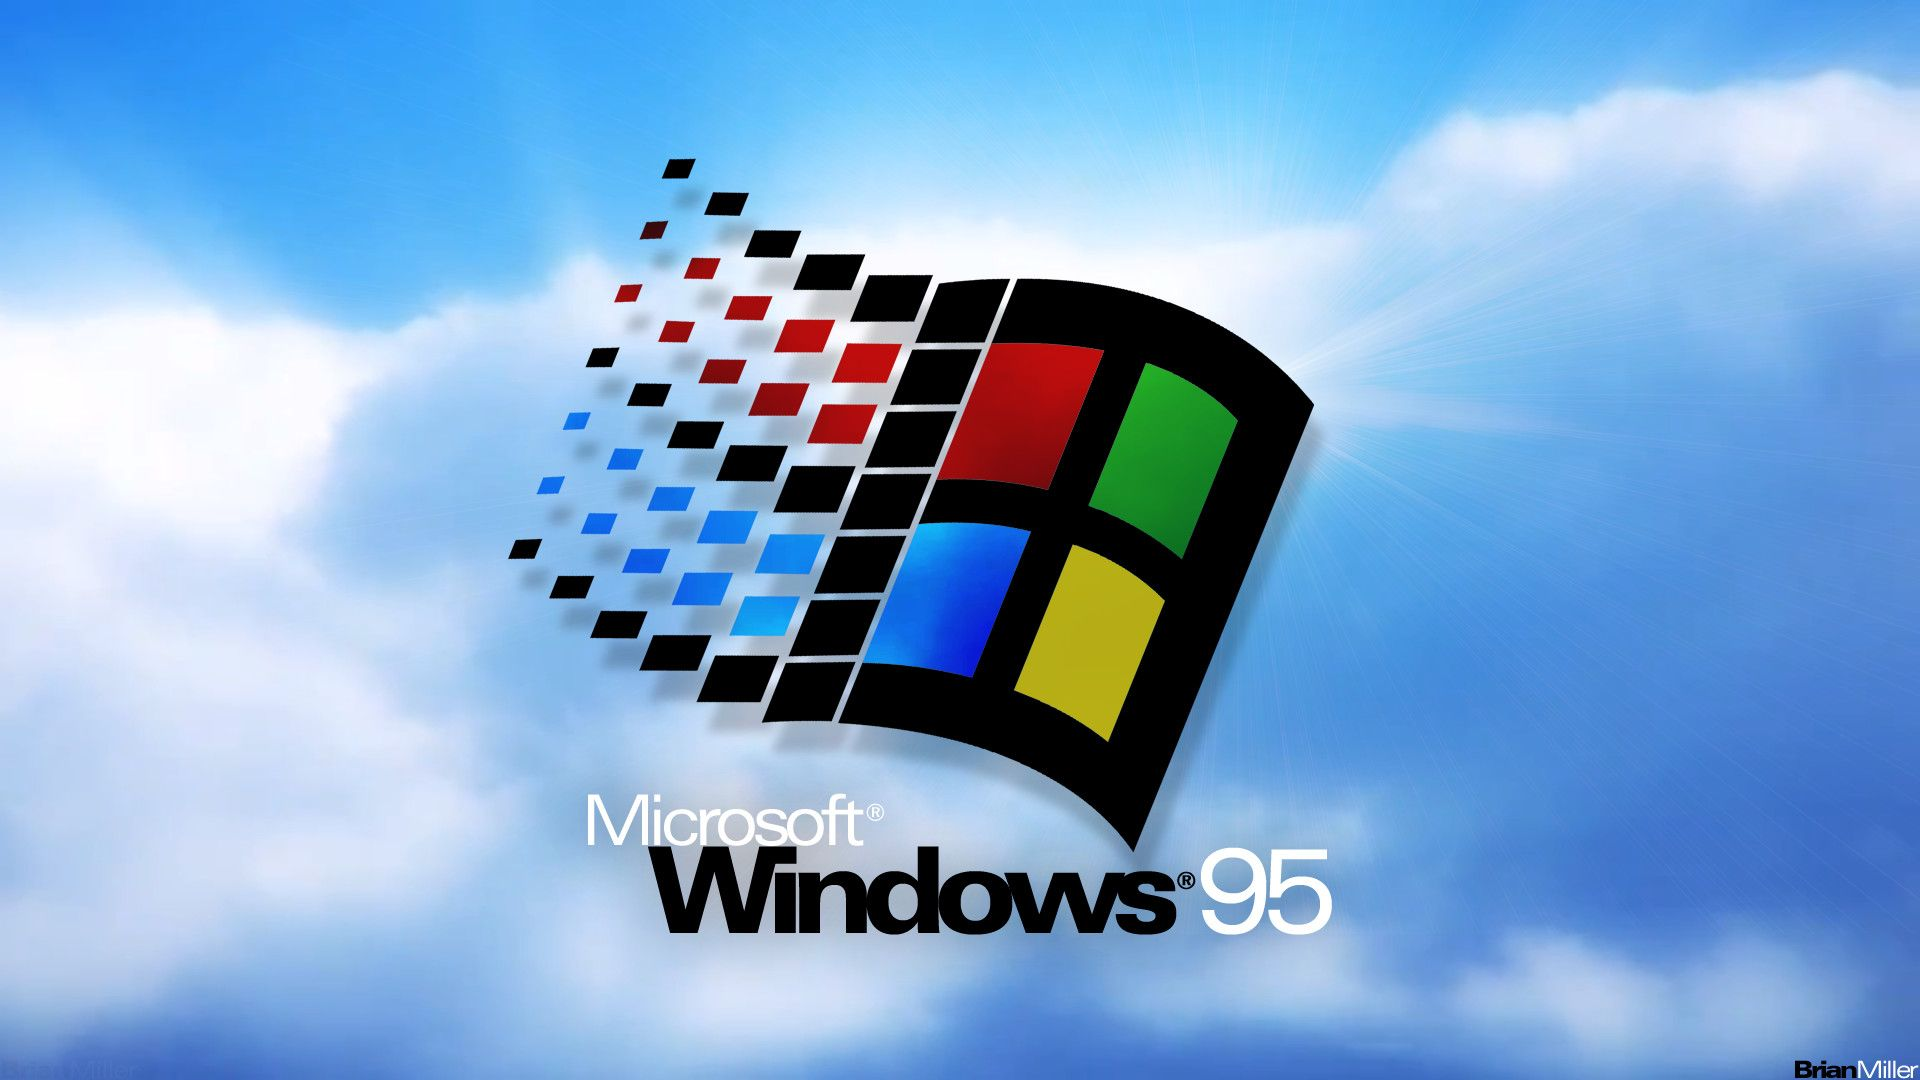 Windows 98 Wallpapers Top Free Windows 98 Backgrounds